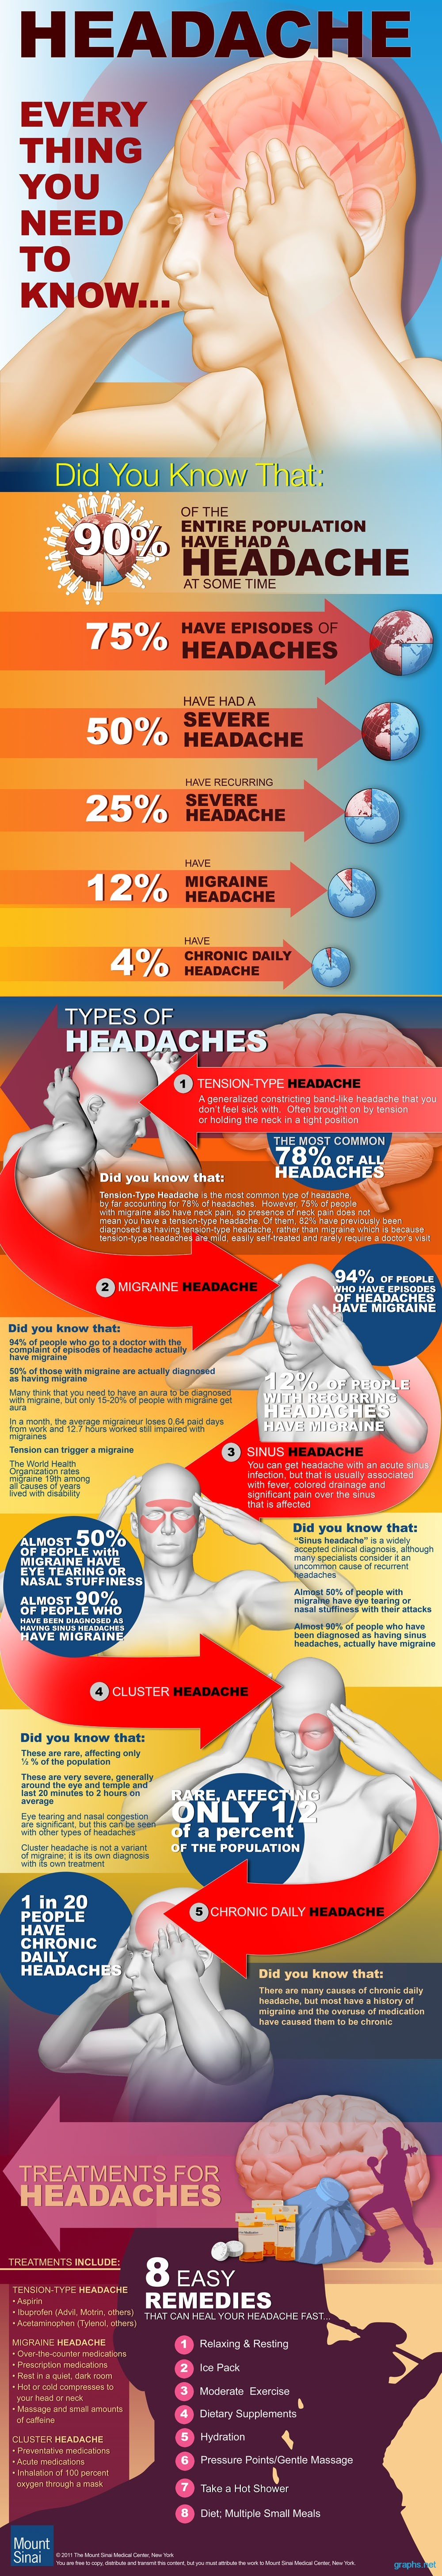 Facts about HEADACHES